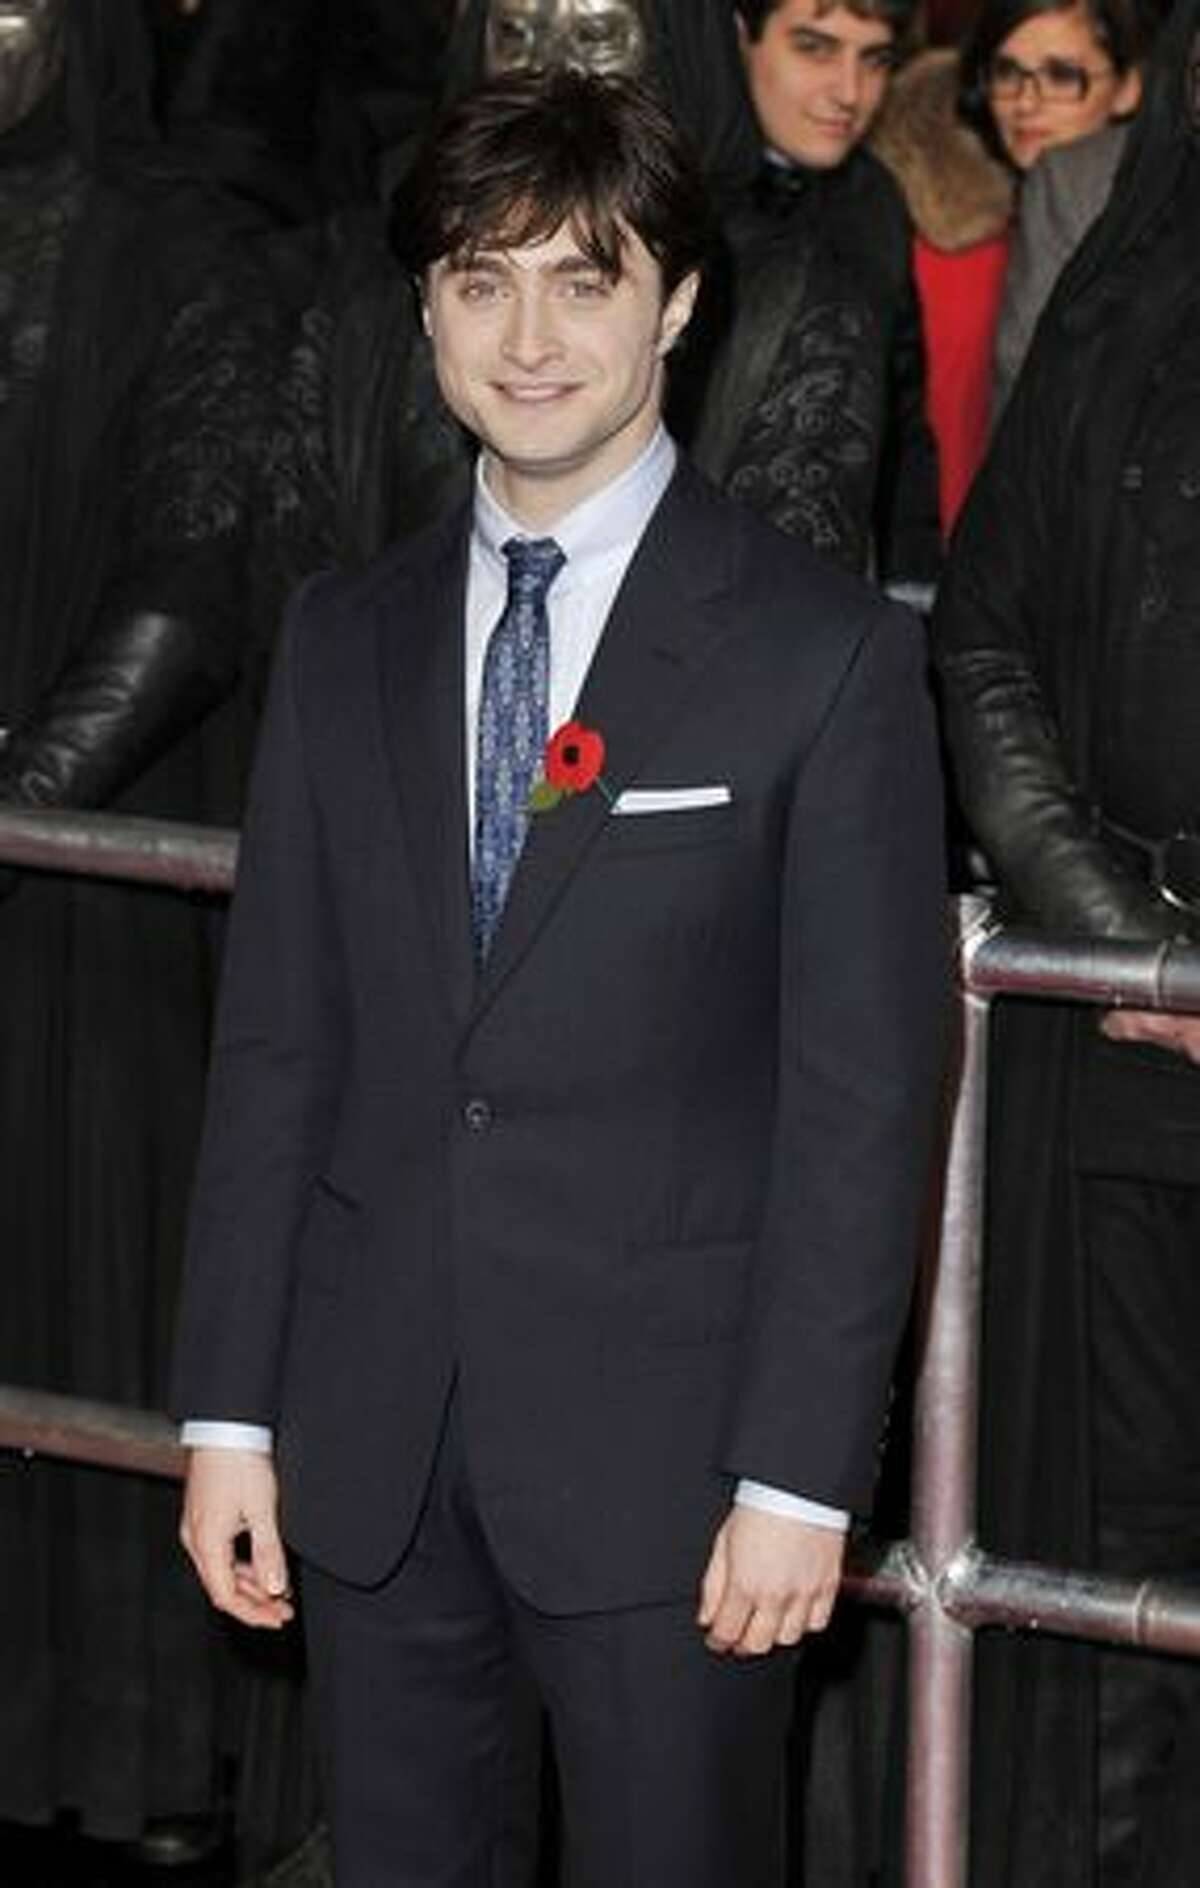 Actor Daniel Radcliffe (Harry) attends the